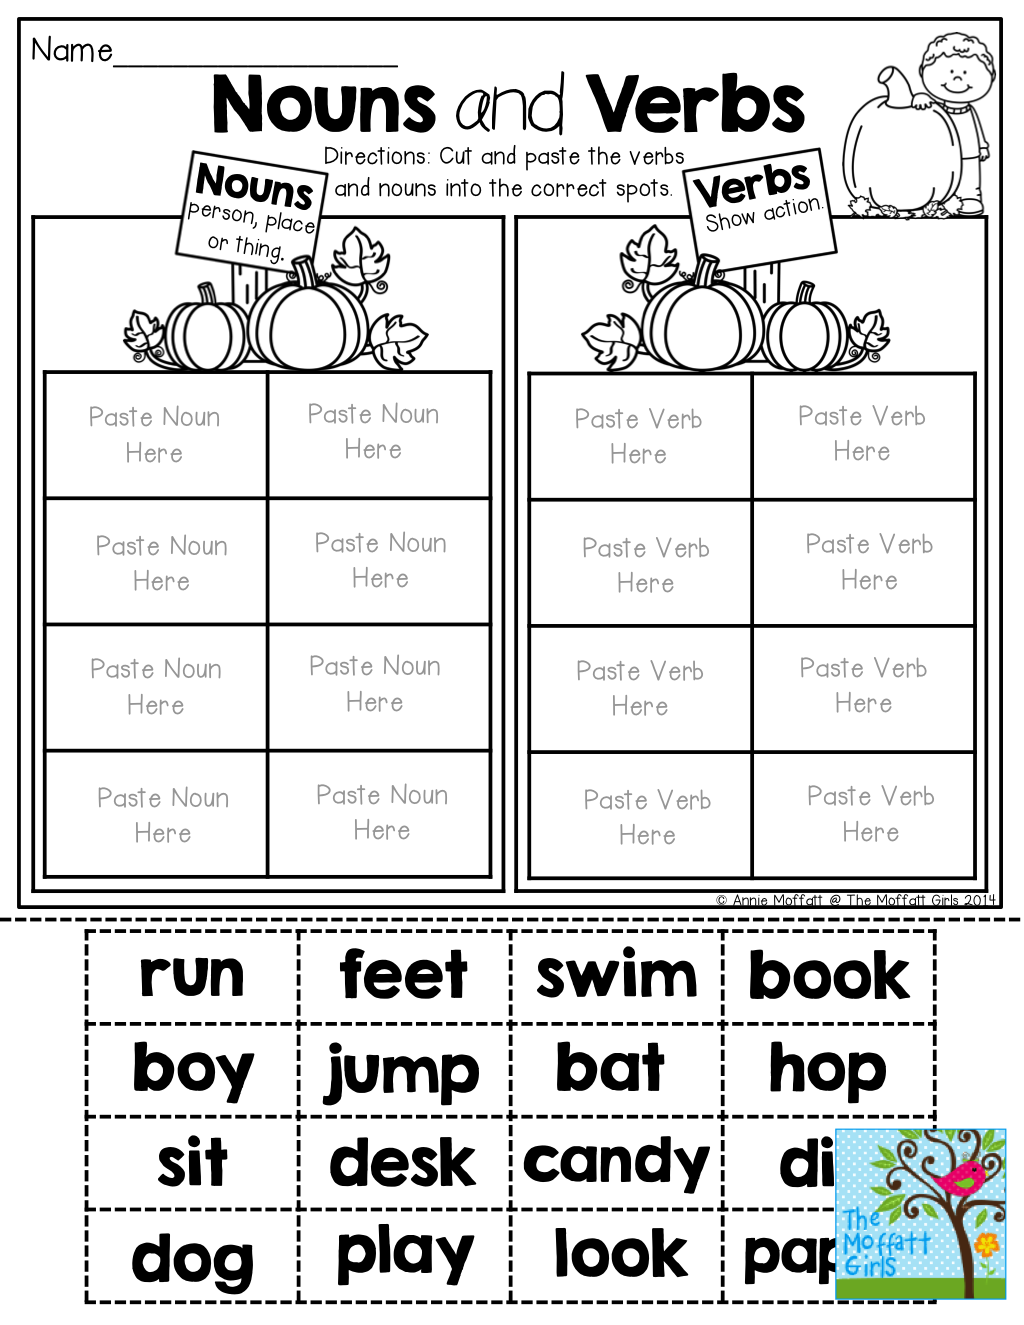 worksheet Nouns And Verbs Worksheets nouns and verbs sorting tons of fun printables writenouns printables